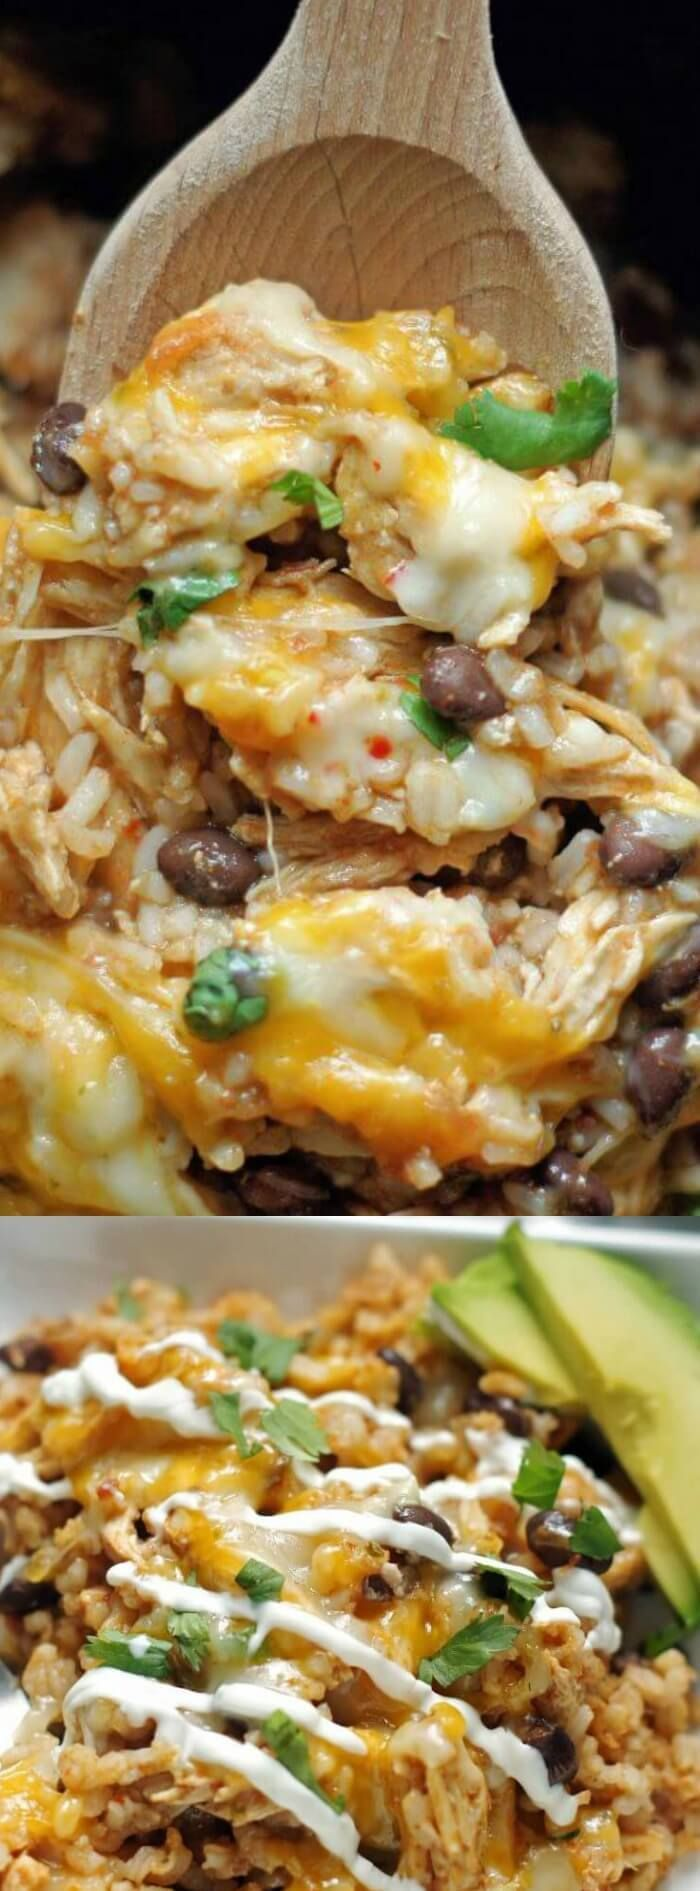 """Slow Cooker Spicy Chicken and Rice dinner recipe is full of flavors and just the right amount of """"heat"""". It's simple to make and will become a favorite!!! via @bestblogrecipes"""